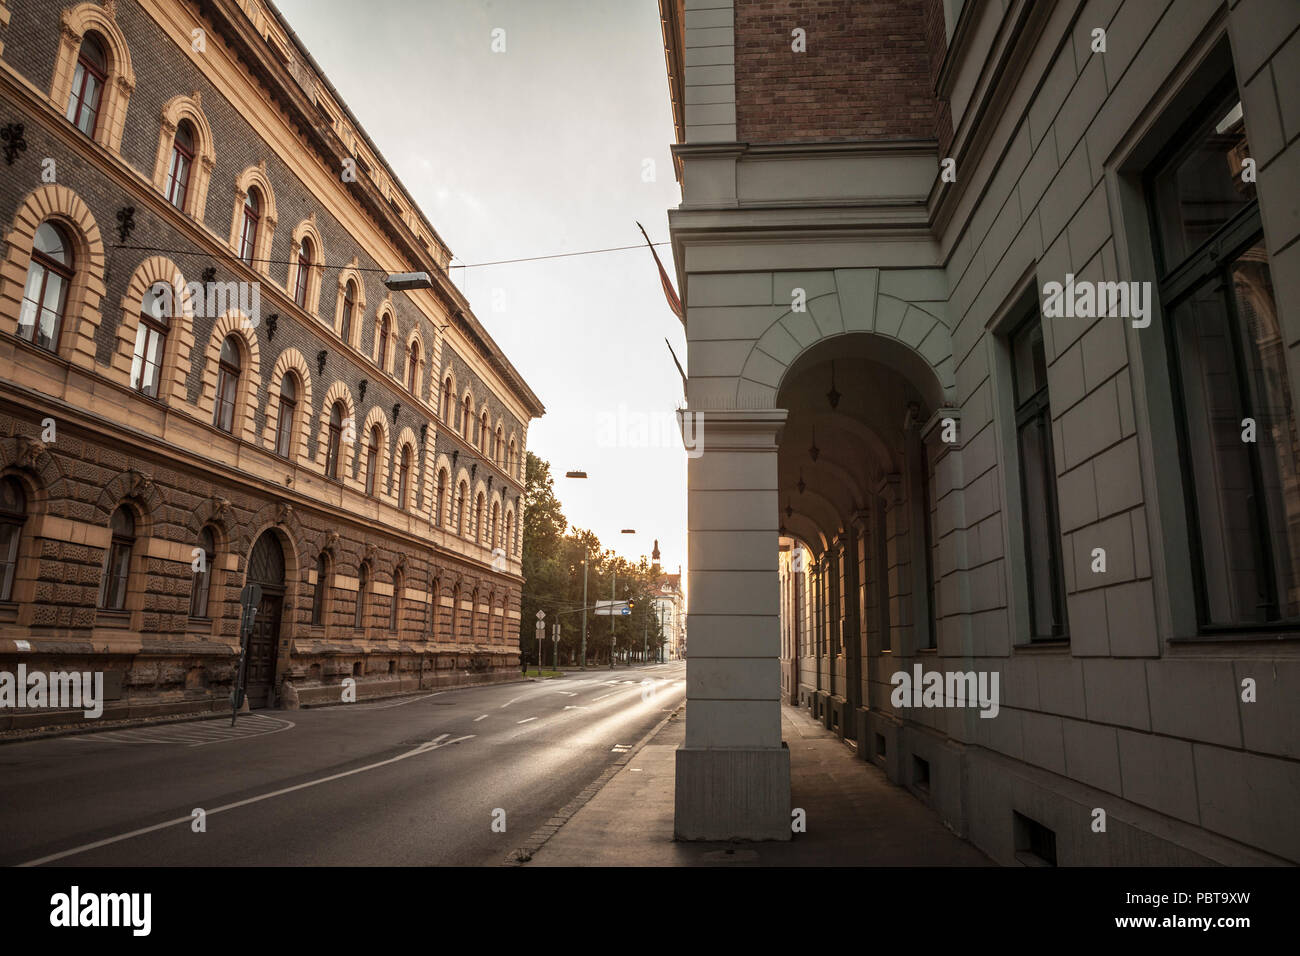 Street of the city center of Szeged, Southern Hungary, surrounded with buildings from the 19th century, with the typical stone architecture of Austro  - Stock Image